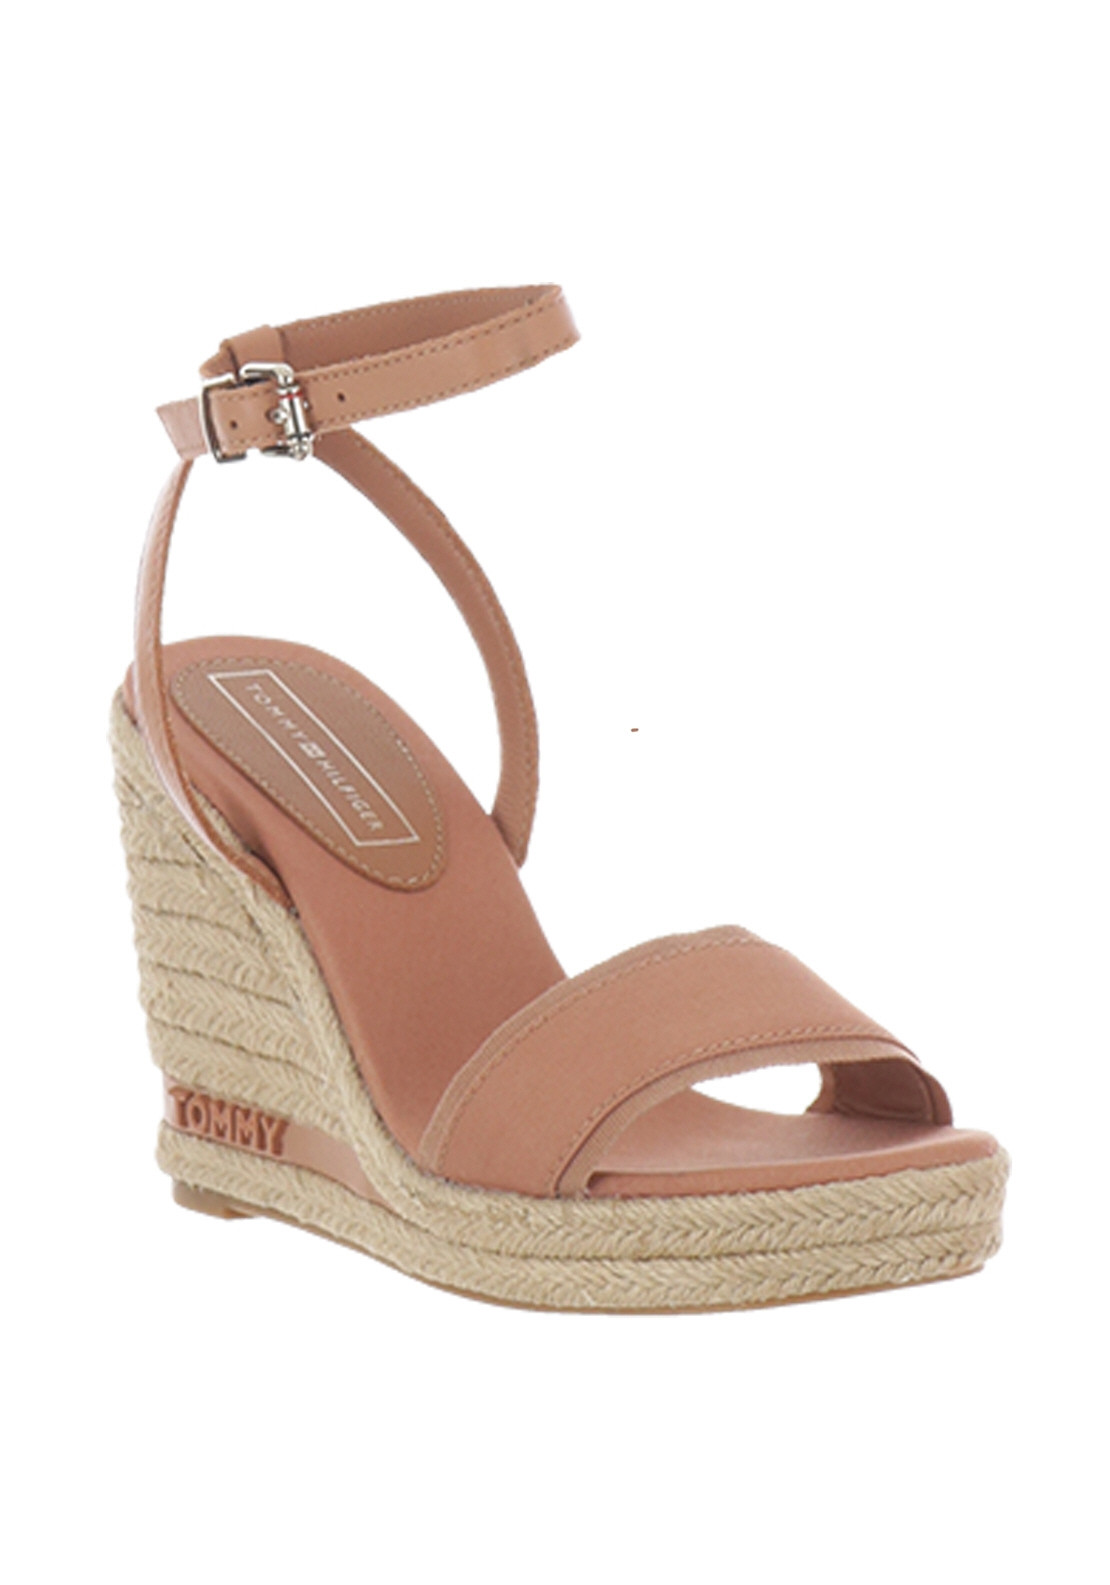 6b314ff54c2 Tommy Hilfiger Womens Elena Wedge Sandals, Pink